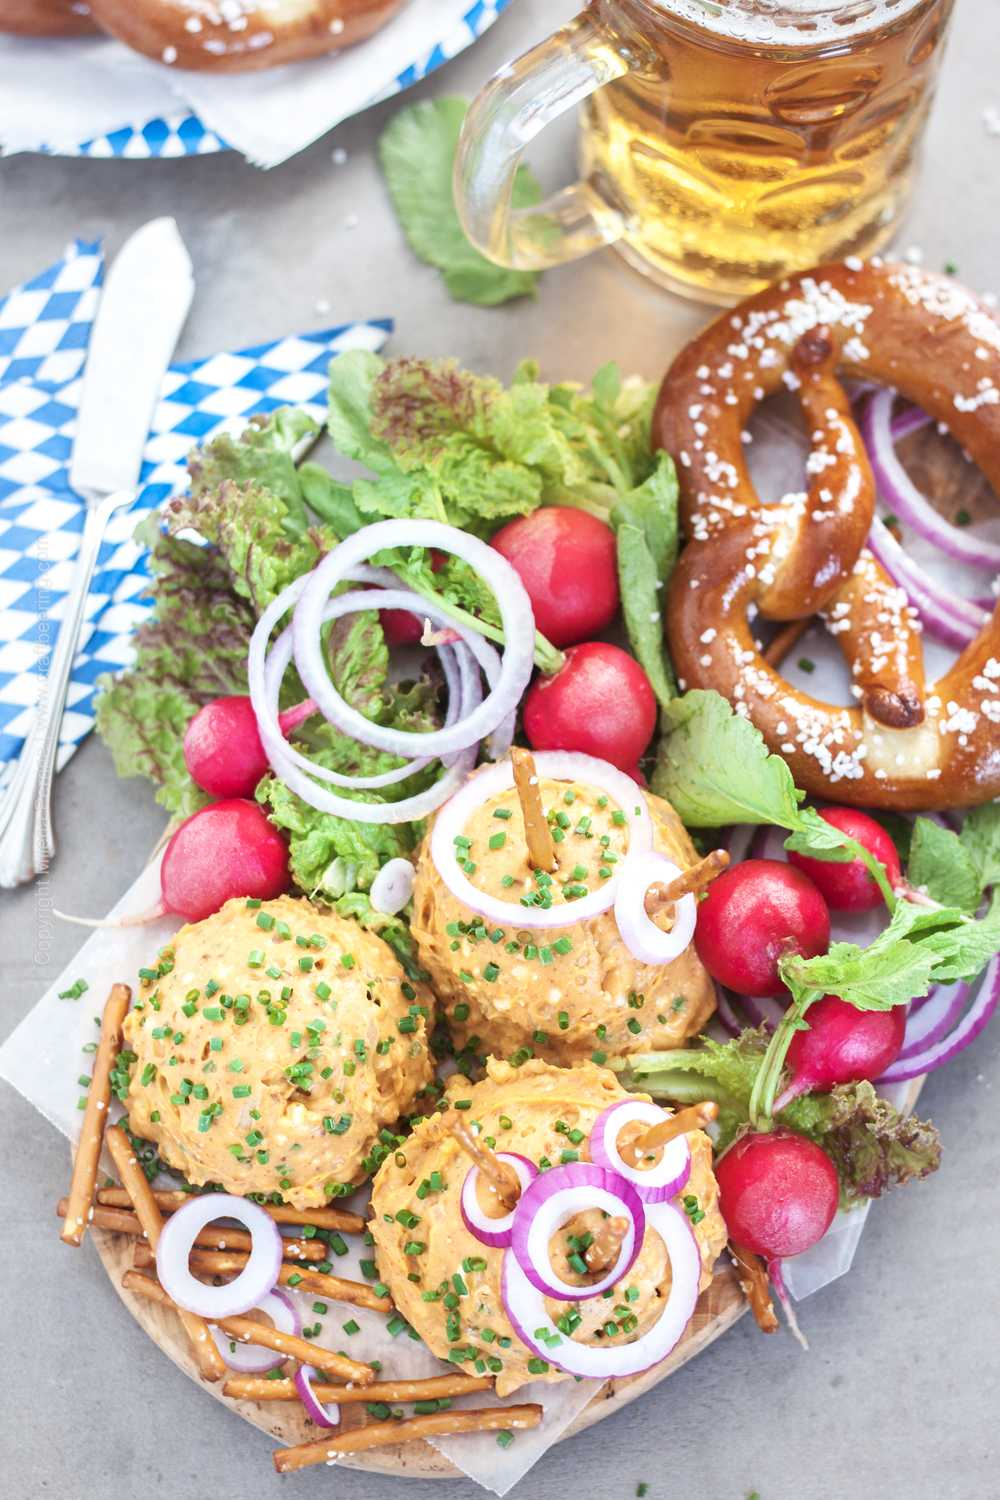 Obatzda cheese dip - traditional Bavarian presentation with onions, radishes, lettuce.